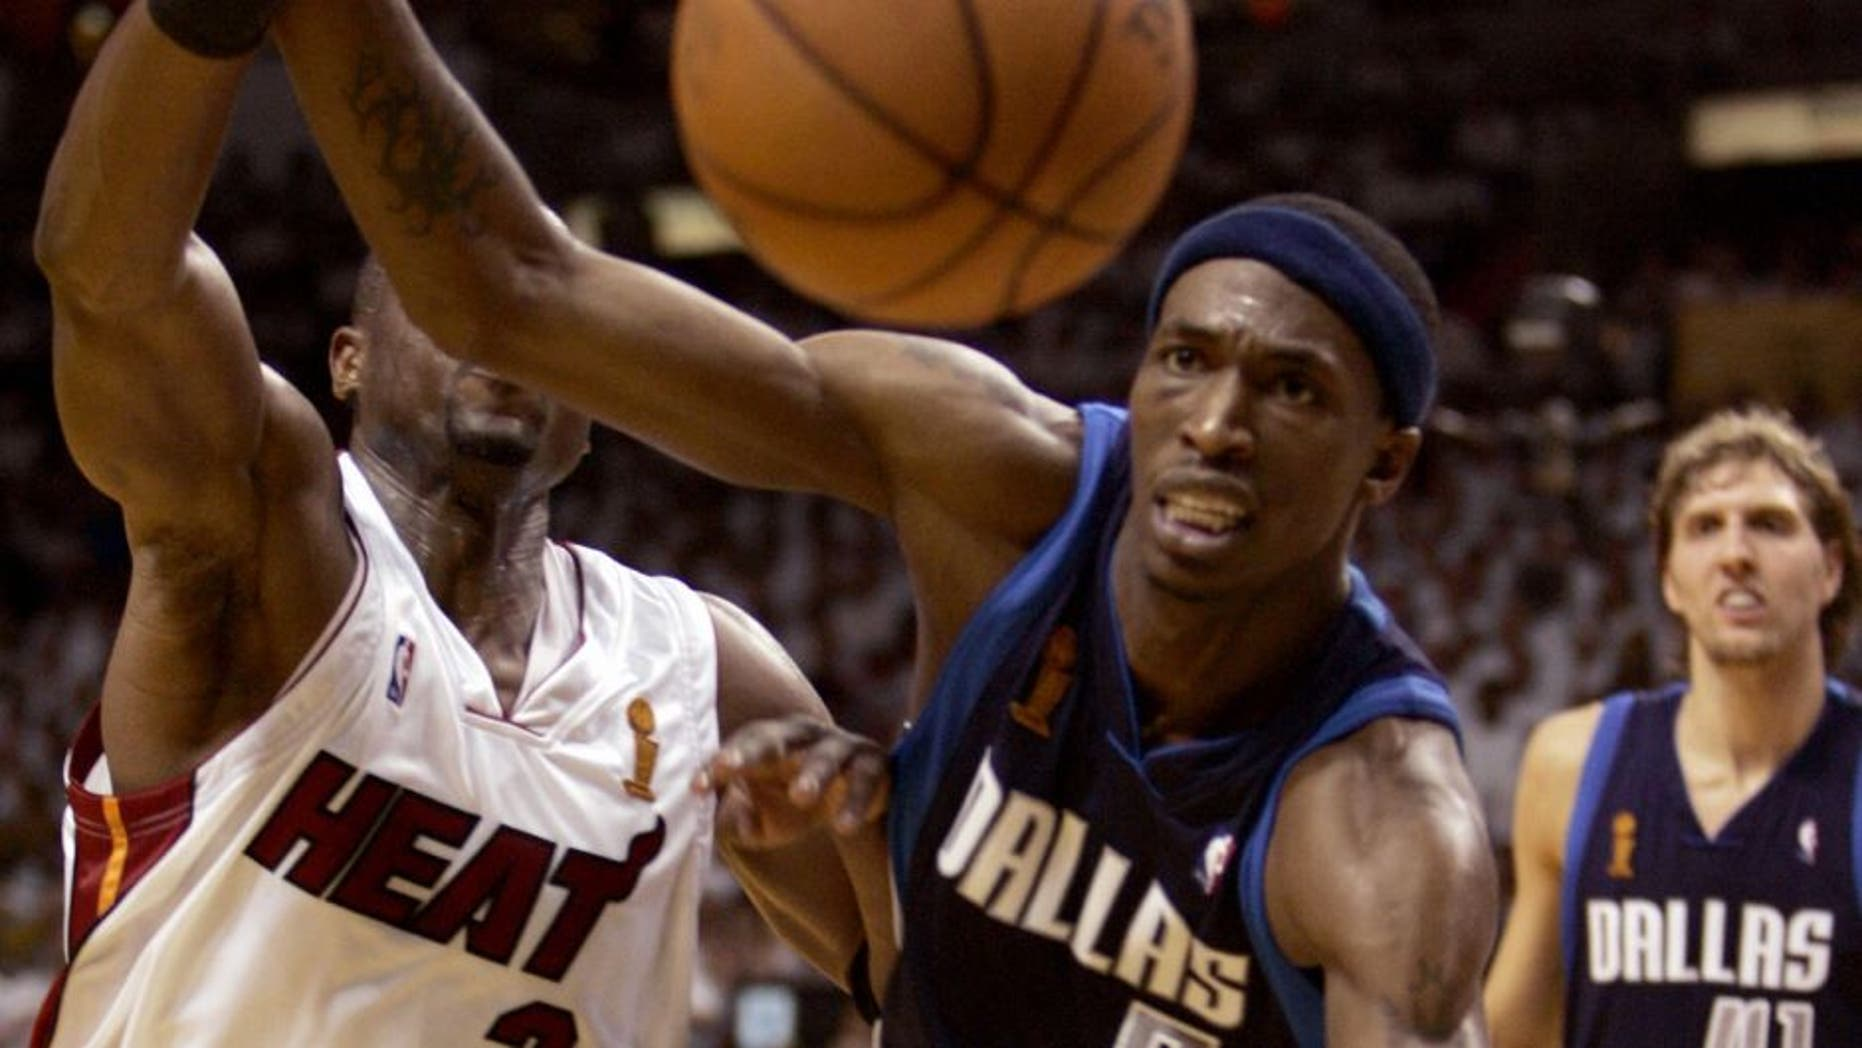 Miami, UNITED STATES: Josh Howard (R) of the Dallas Mavericks vies with Dwyane Wade of the Miami Heat during Game 5 of the NBA finals in Miami 18 June 2006. The best-of-seven series is tied 2-2. AFP PHOTO/Robert SULLIVAN (Photo credit should read ROBERT SULLIVAN/AFP/Getty Images)